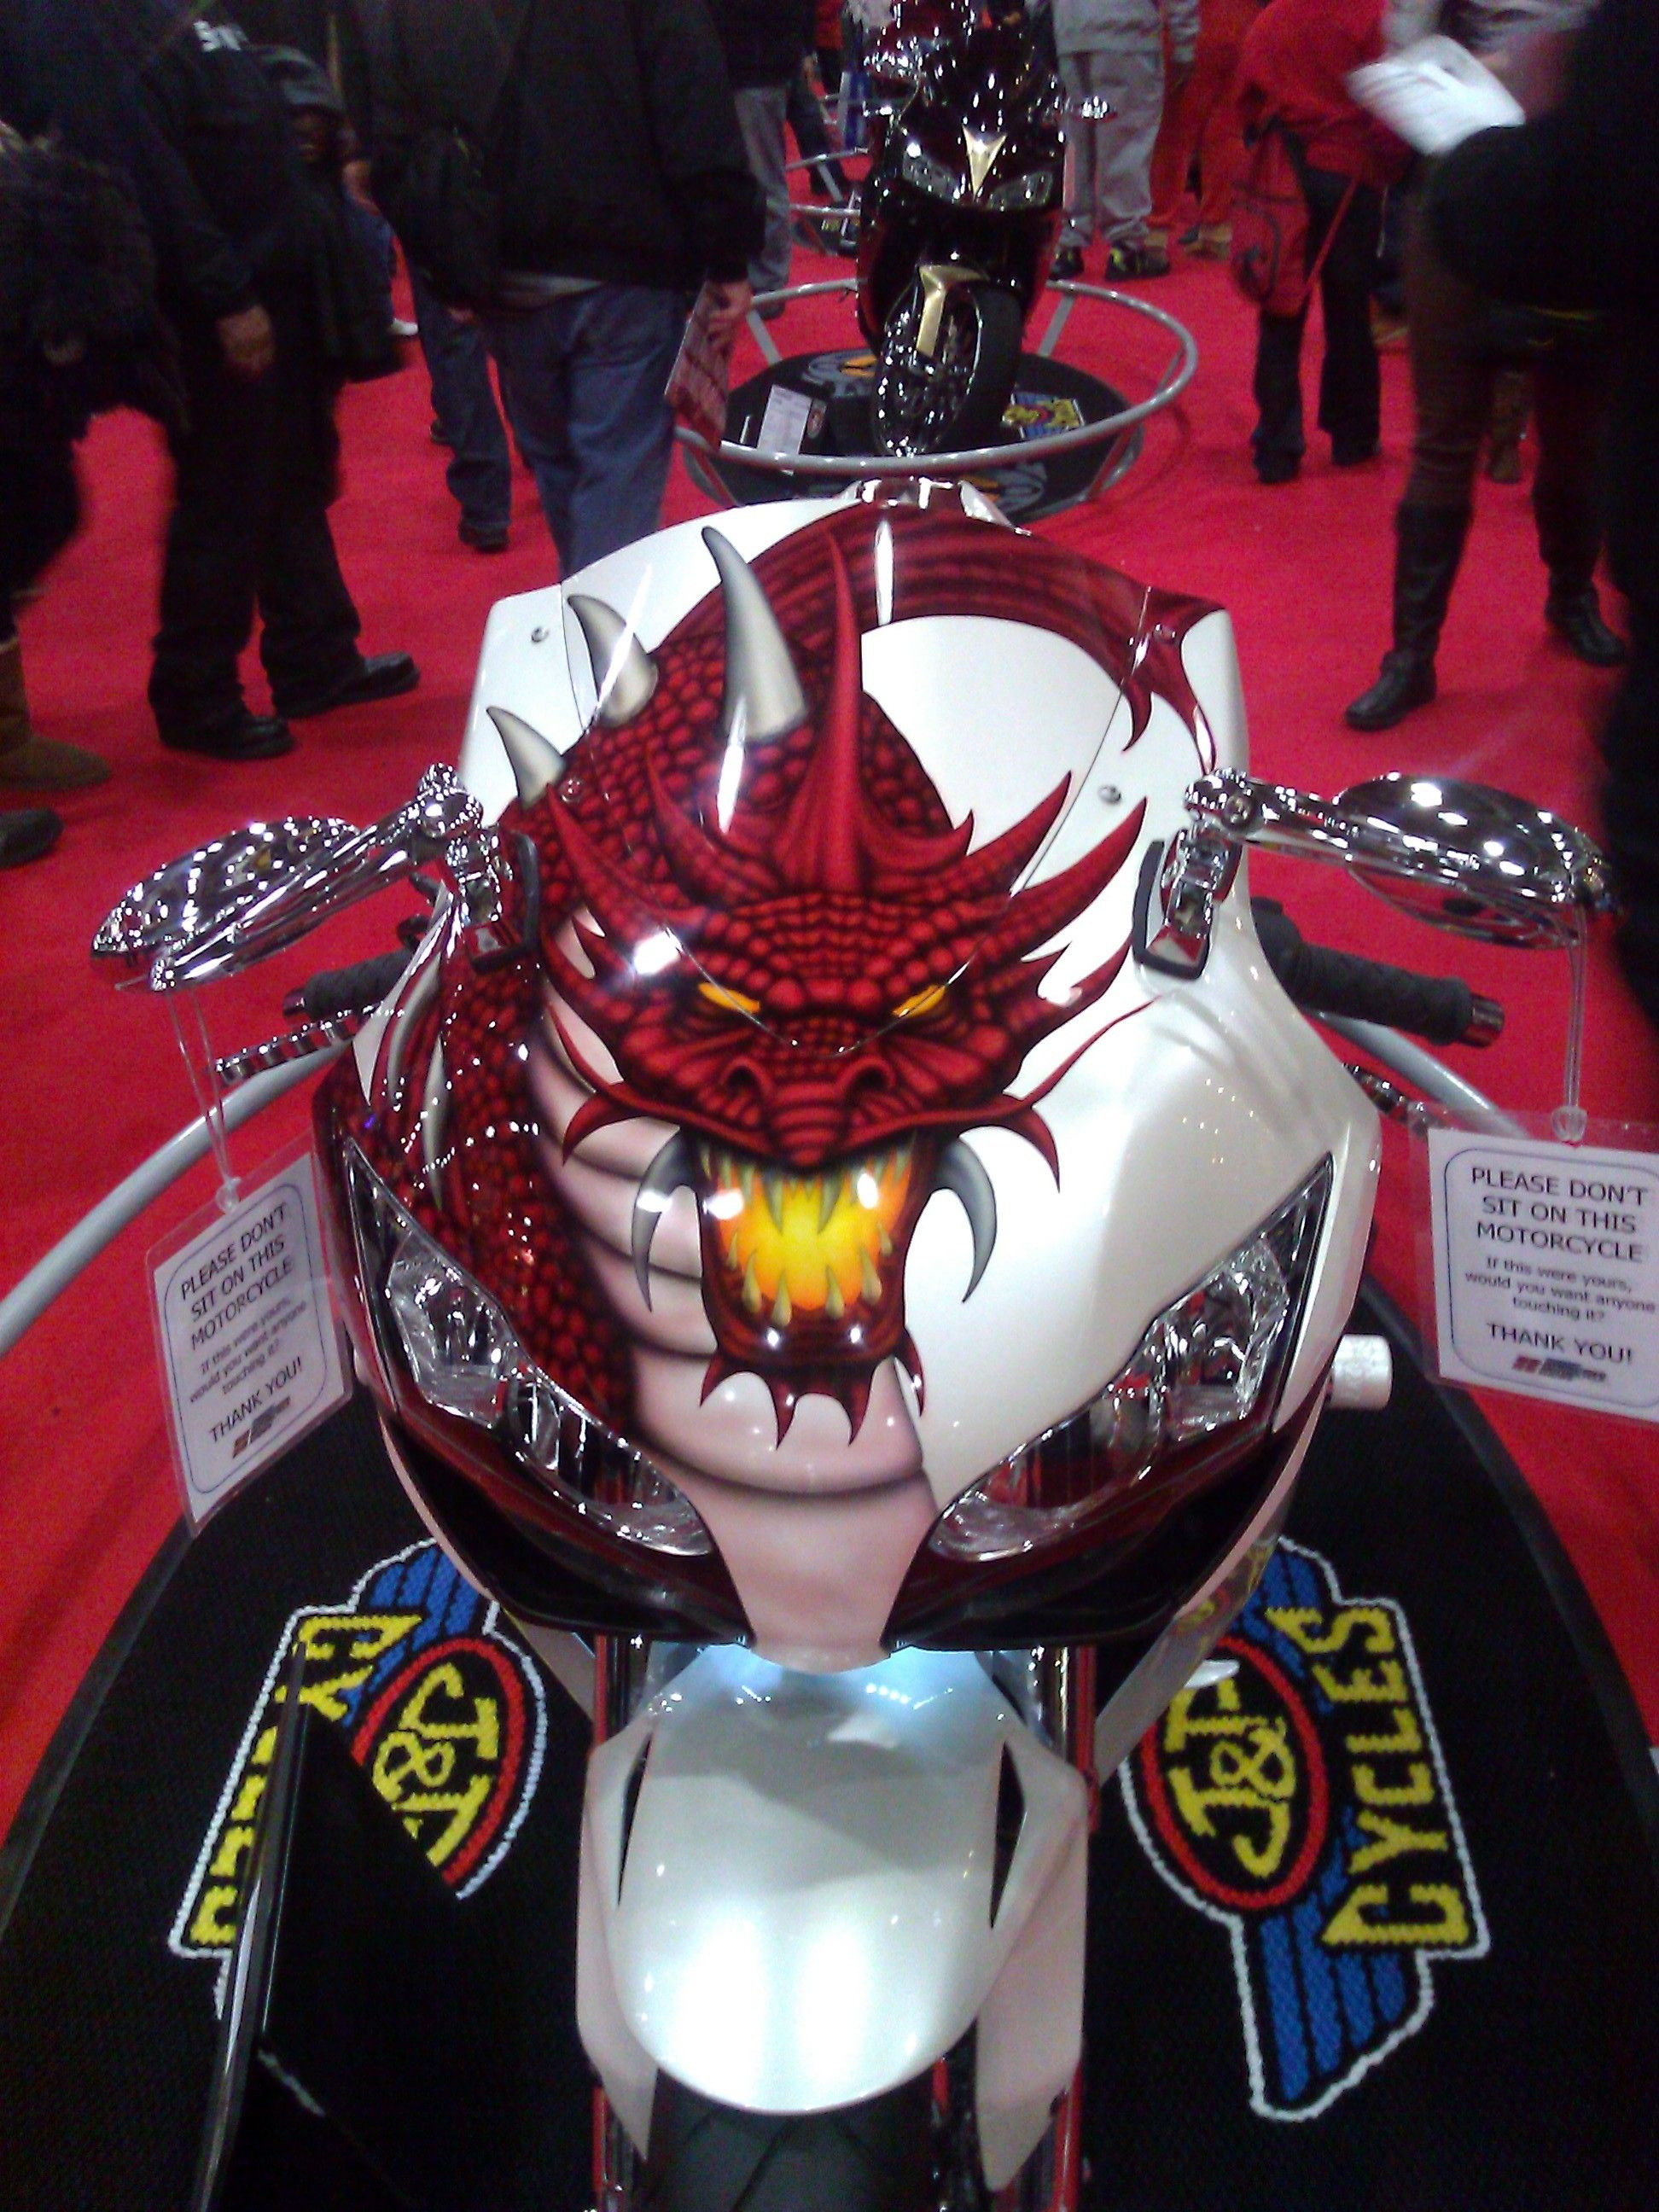 Dragon Themed Custom Design Streetbike Nymotorcycleshows Bikes